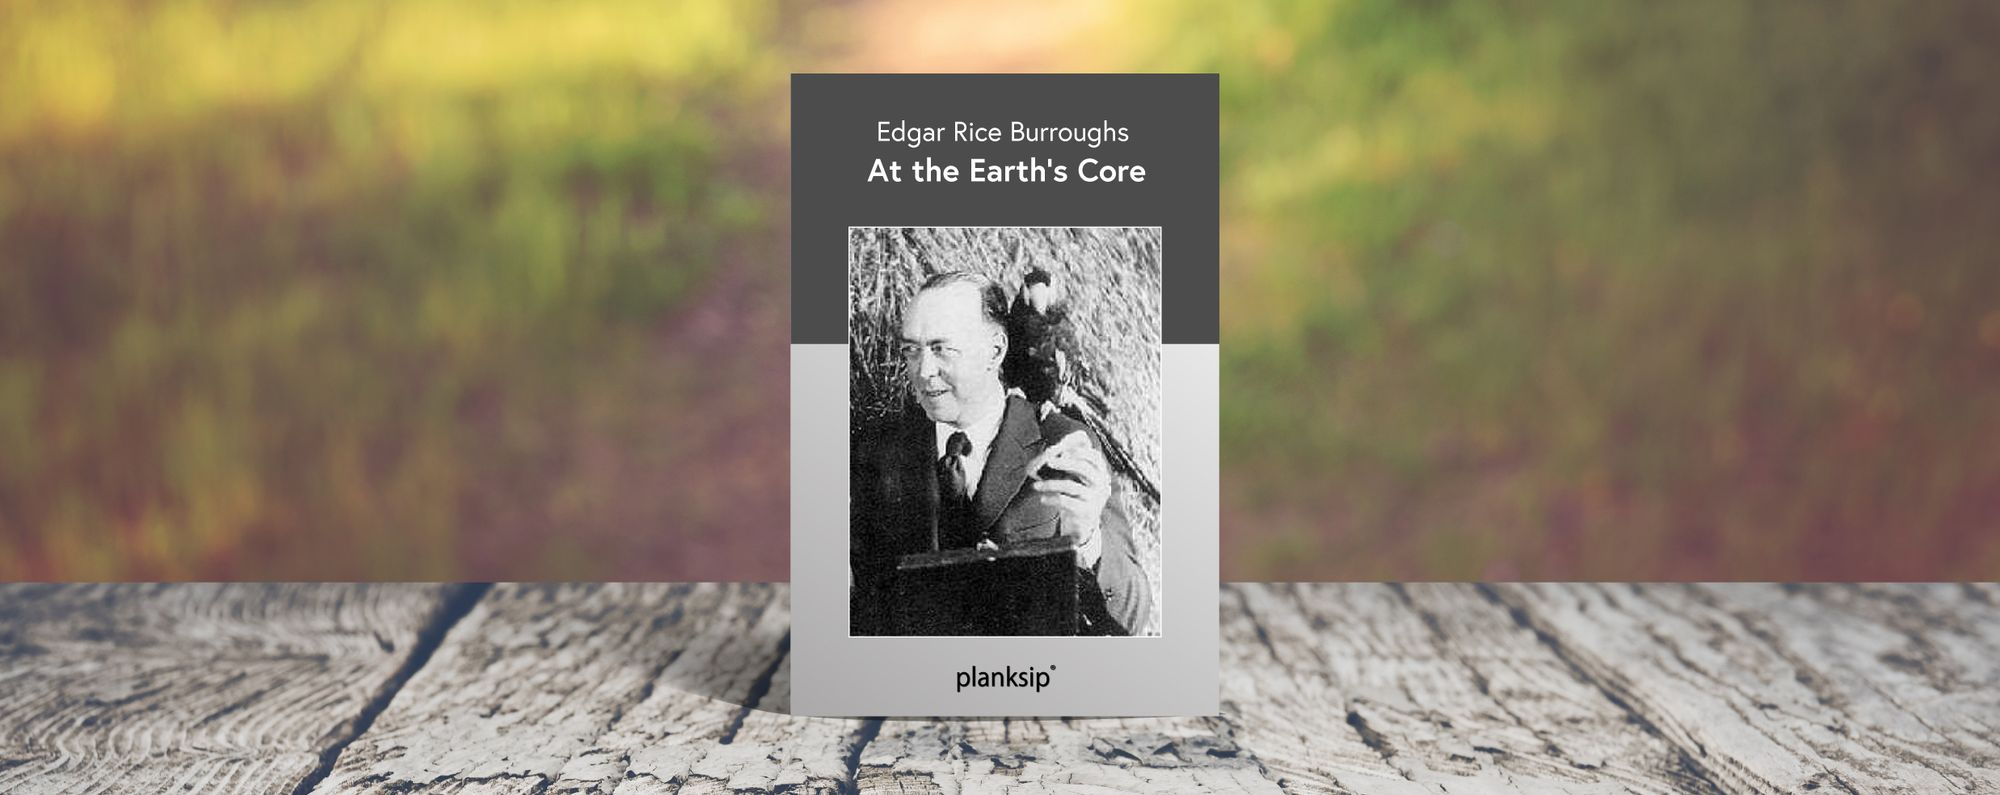 At Earth's Core by Edgar Rice Burroughs (1875-1950). Published by planksip